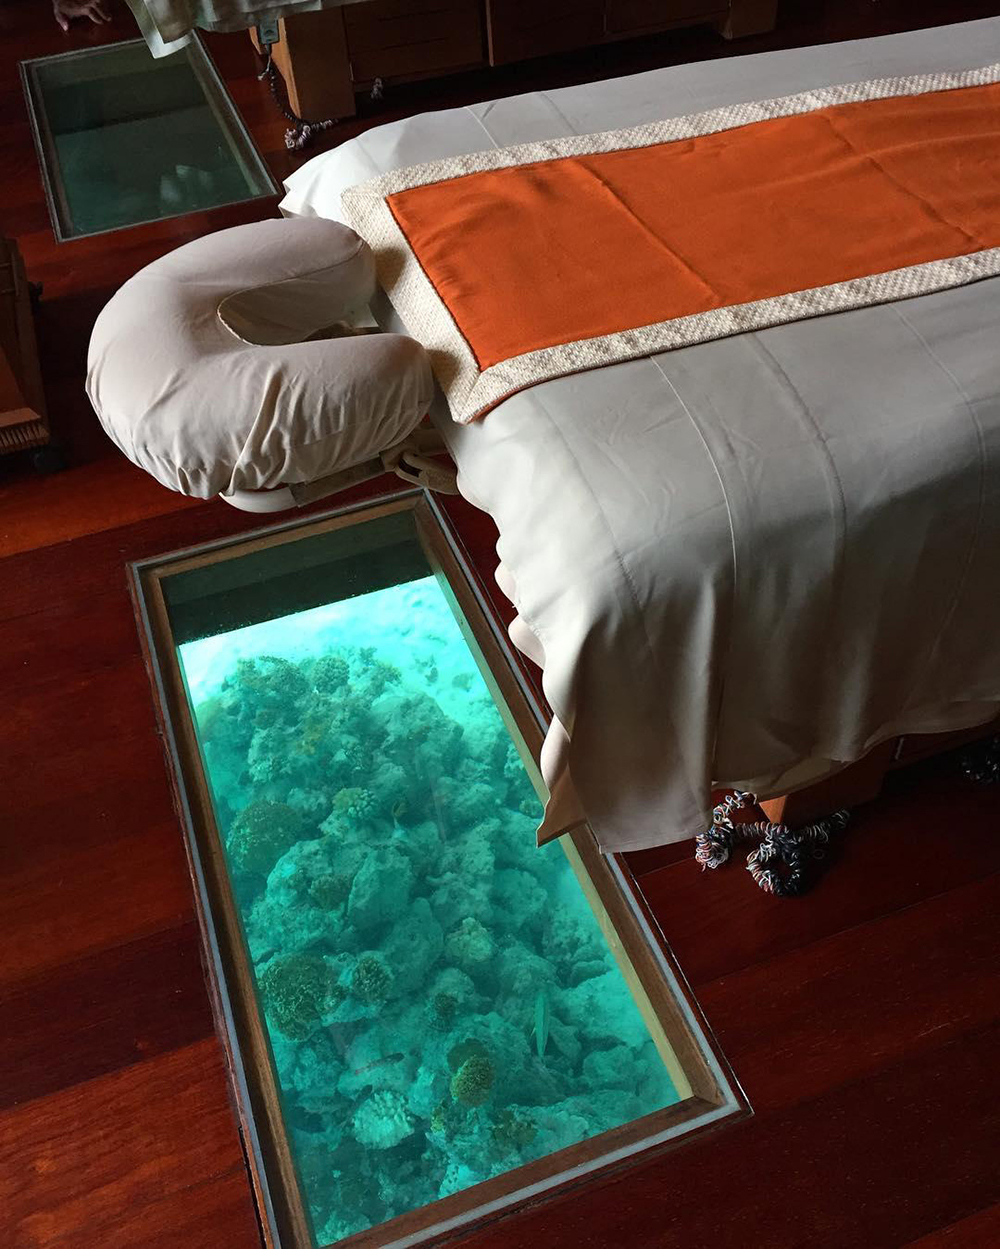 Guests receiving treatments in the Fare Miti Overwater Spa Suite can observe fish swimming underneath glass panels.